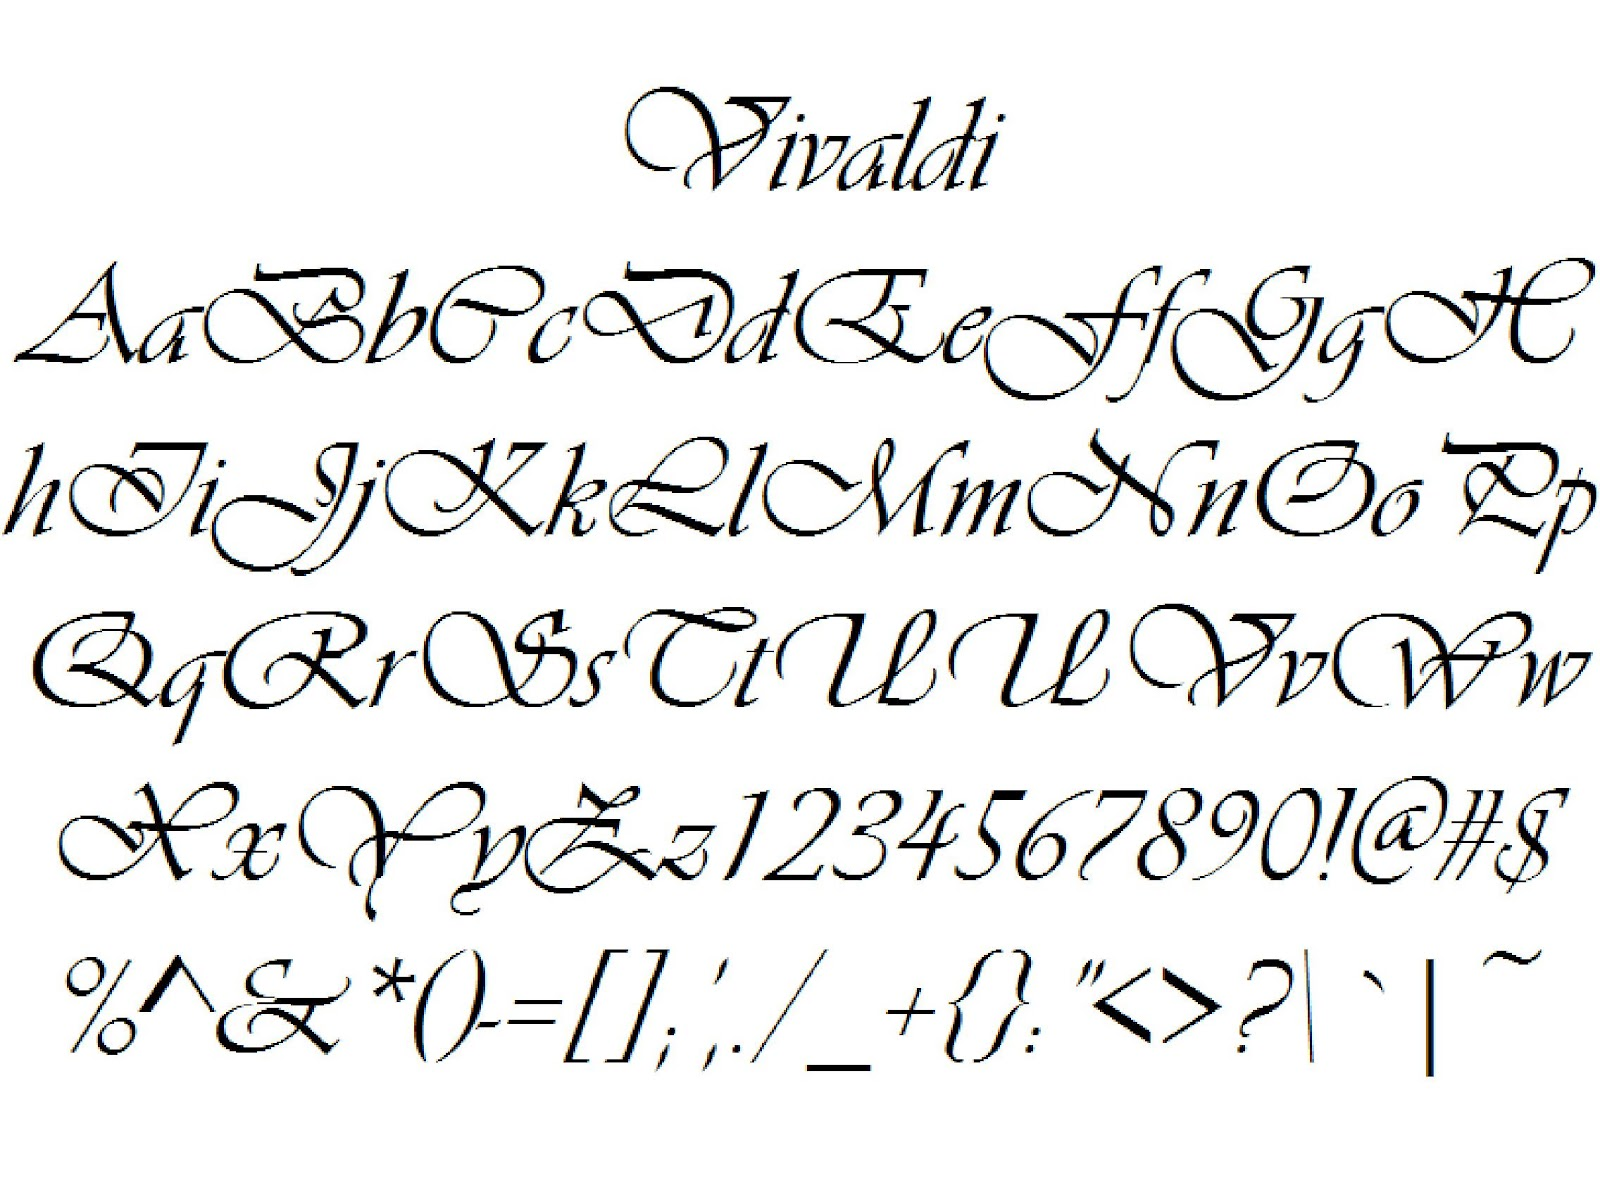 Worksheet Online Cursive Fonts unique alphabet fonts dead tree tattoos meaning pretty sun image impressive moonlight shadow cursive tattoo font sophisticated selfish awesome triba